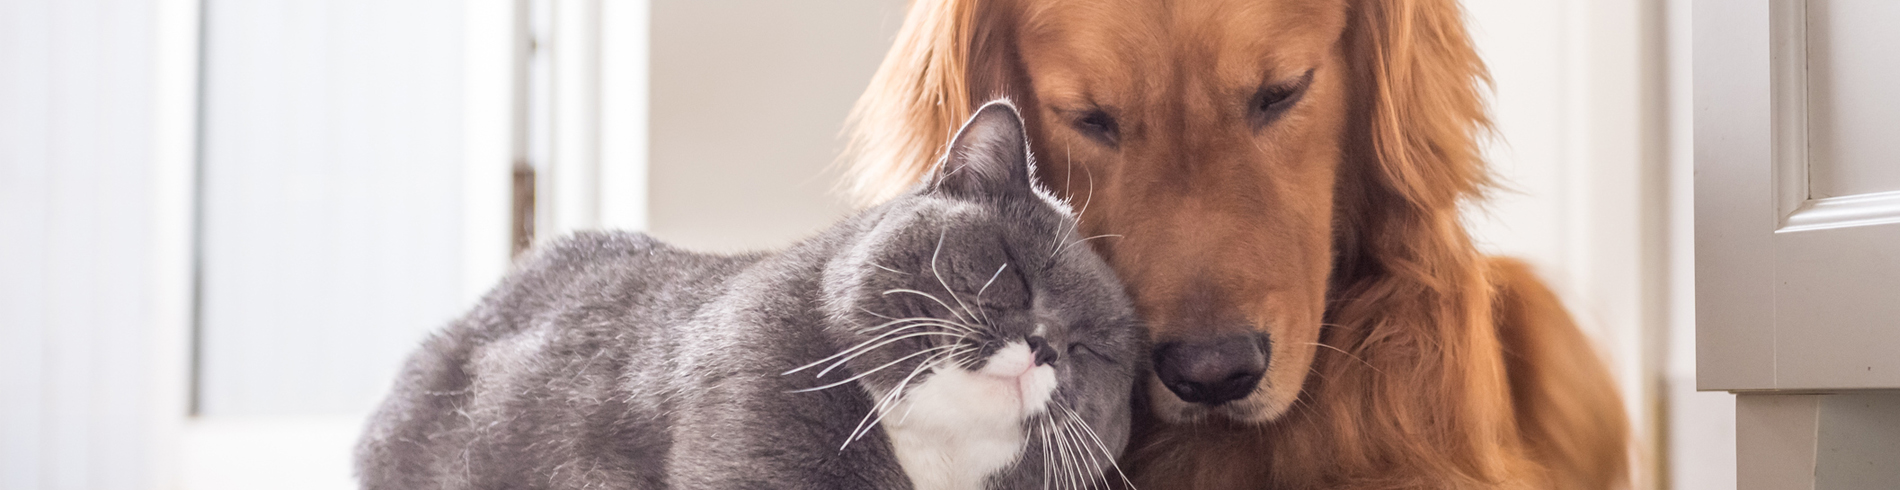 Pet services and veterinary directory